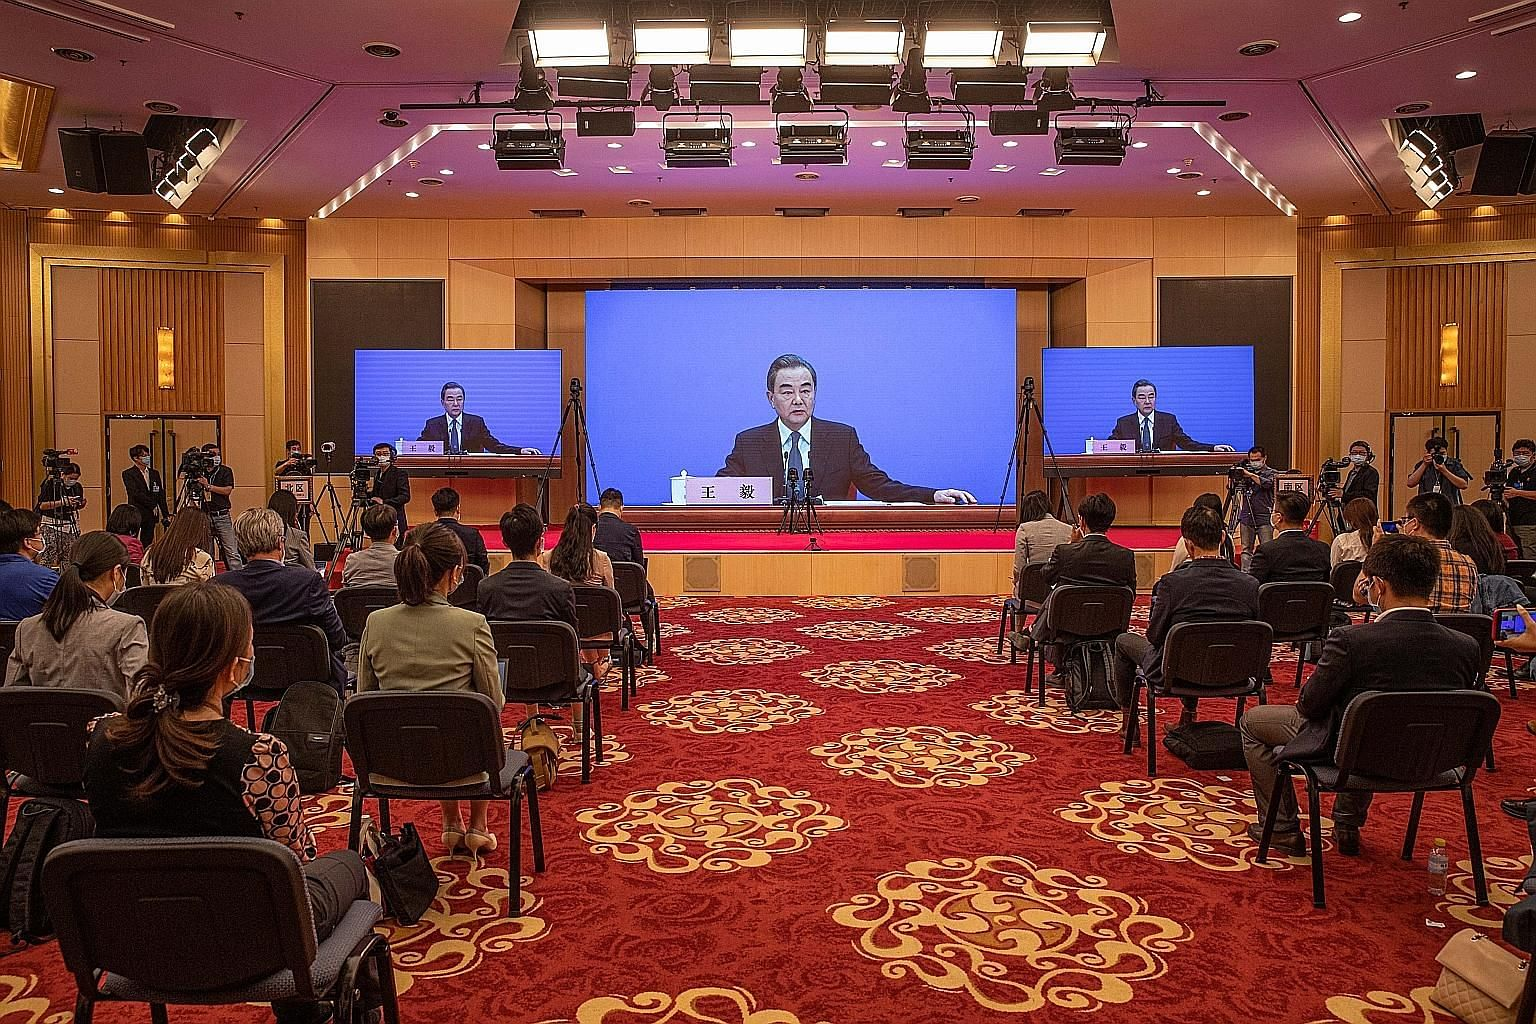 Chinese Foreign Minister Wang Yi speaking to reporters at a virtual briefing on the sidelines of China's legislative meetings in Beijing yesterday. Mr Wang said China has been working with Asean countries to beat the coronavirus, adding that ships an